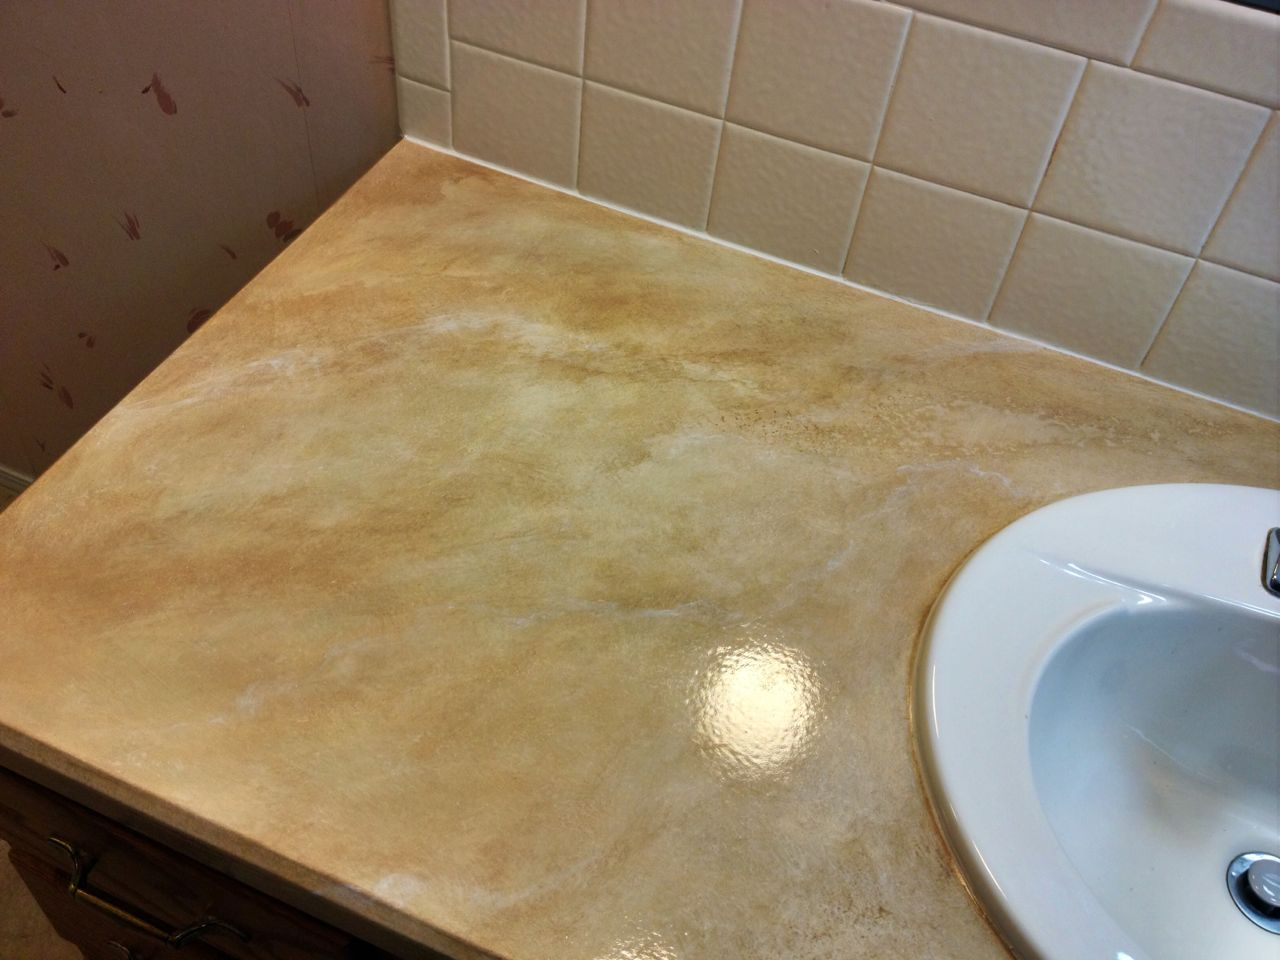 cabinet cabinets marble refinish with kitchen furniture ideas refinishing for your best depot home refacing floor and countertops wood